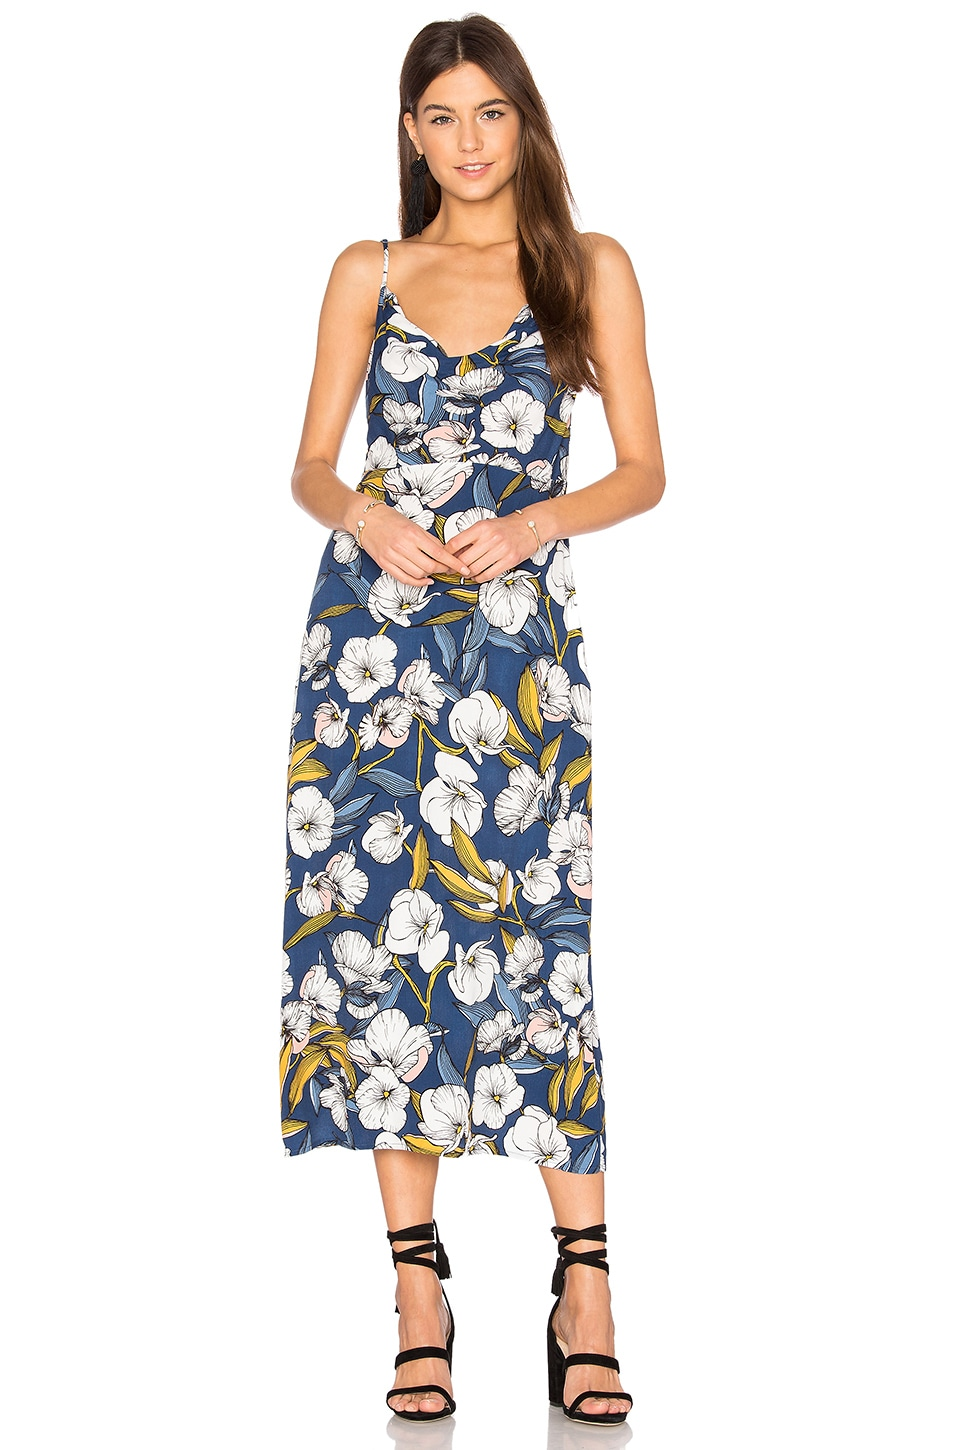 Pacifico Midi Slip Dress by Minkpink